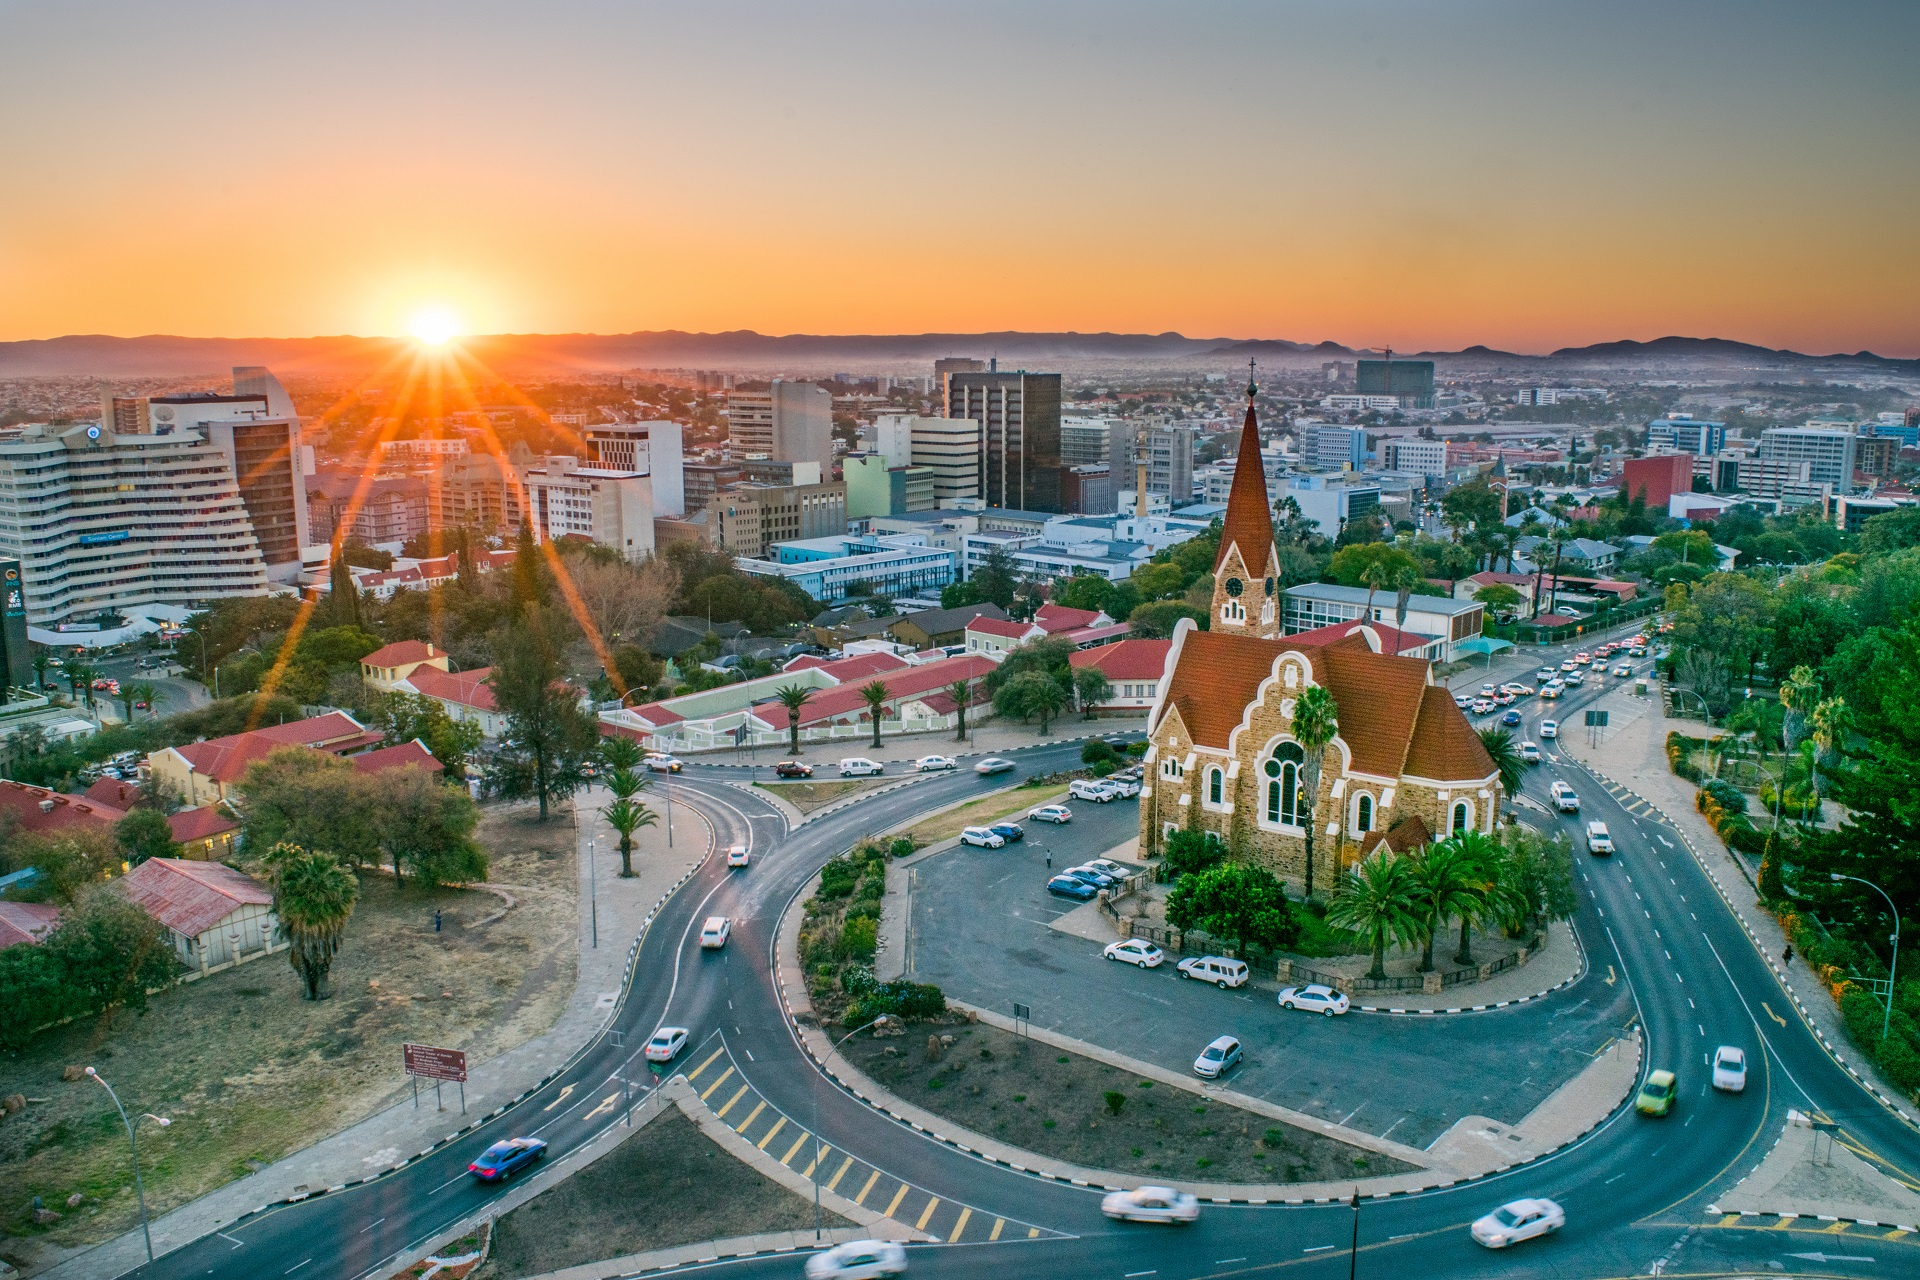 Windhoek in Namibia